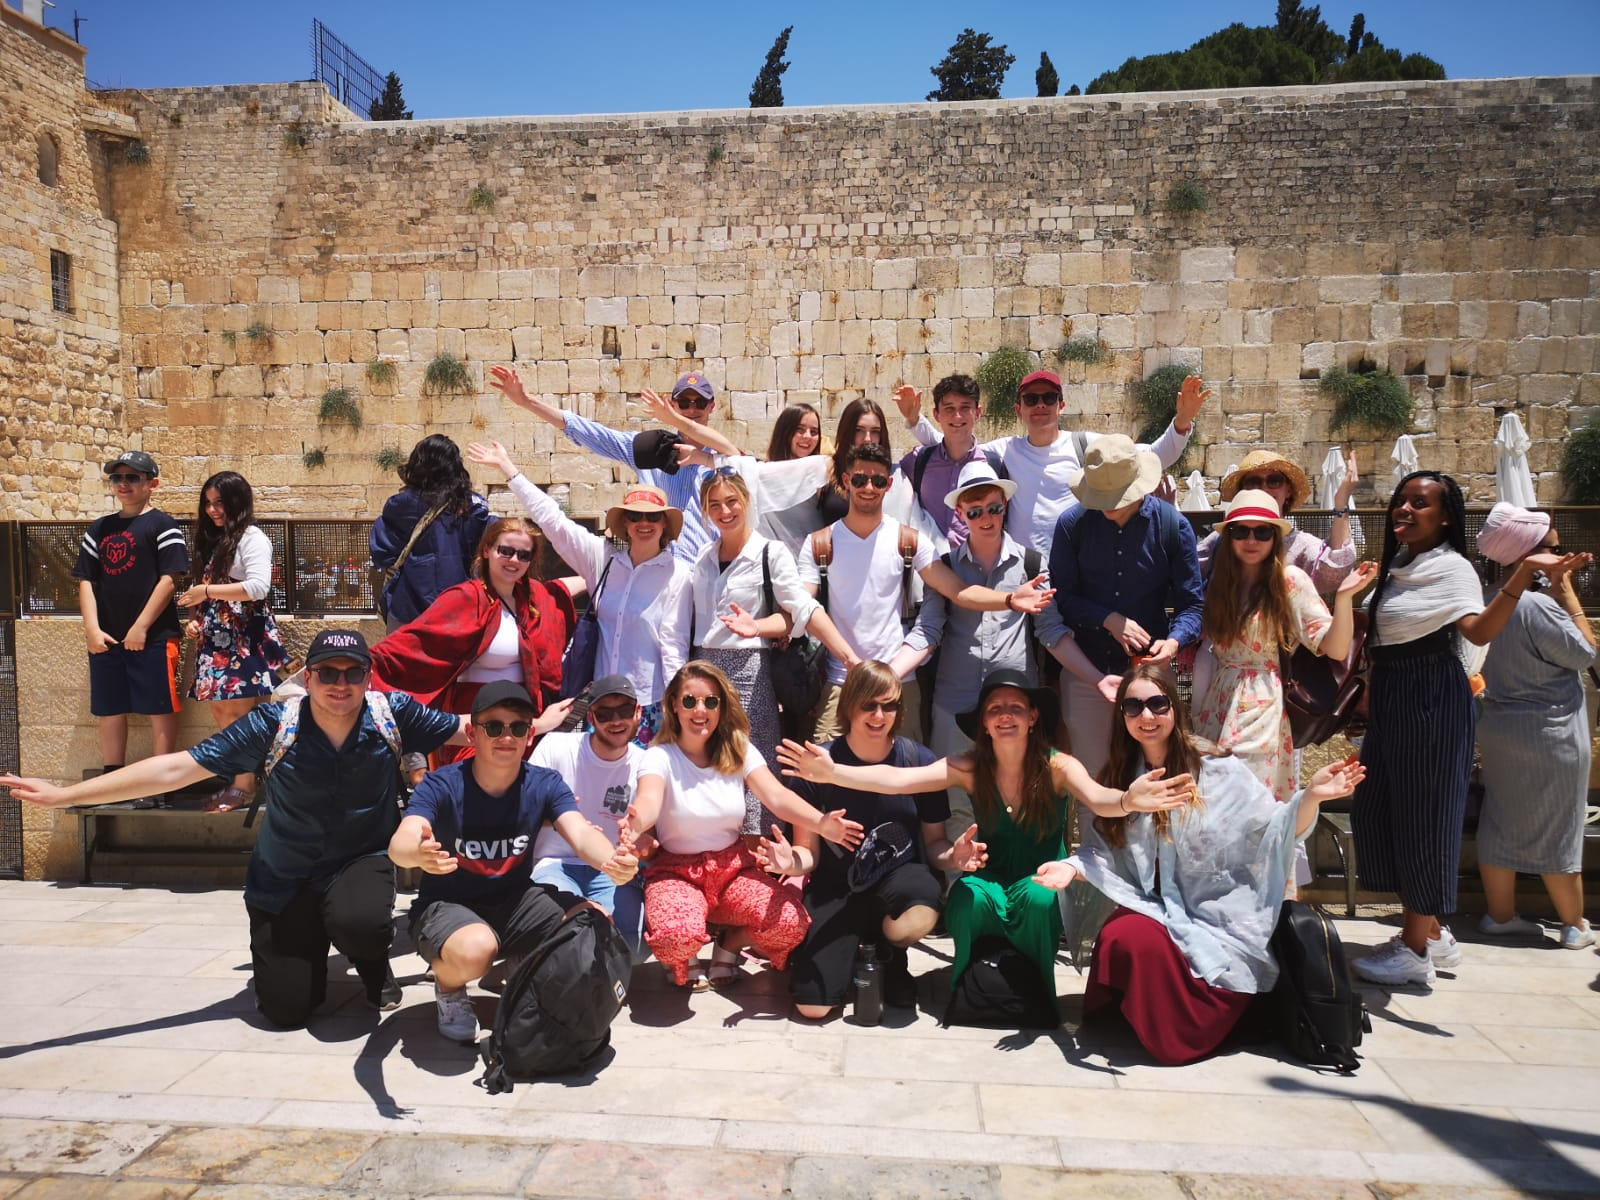 Our group in front of the Western Wall